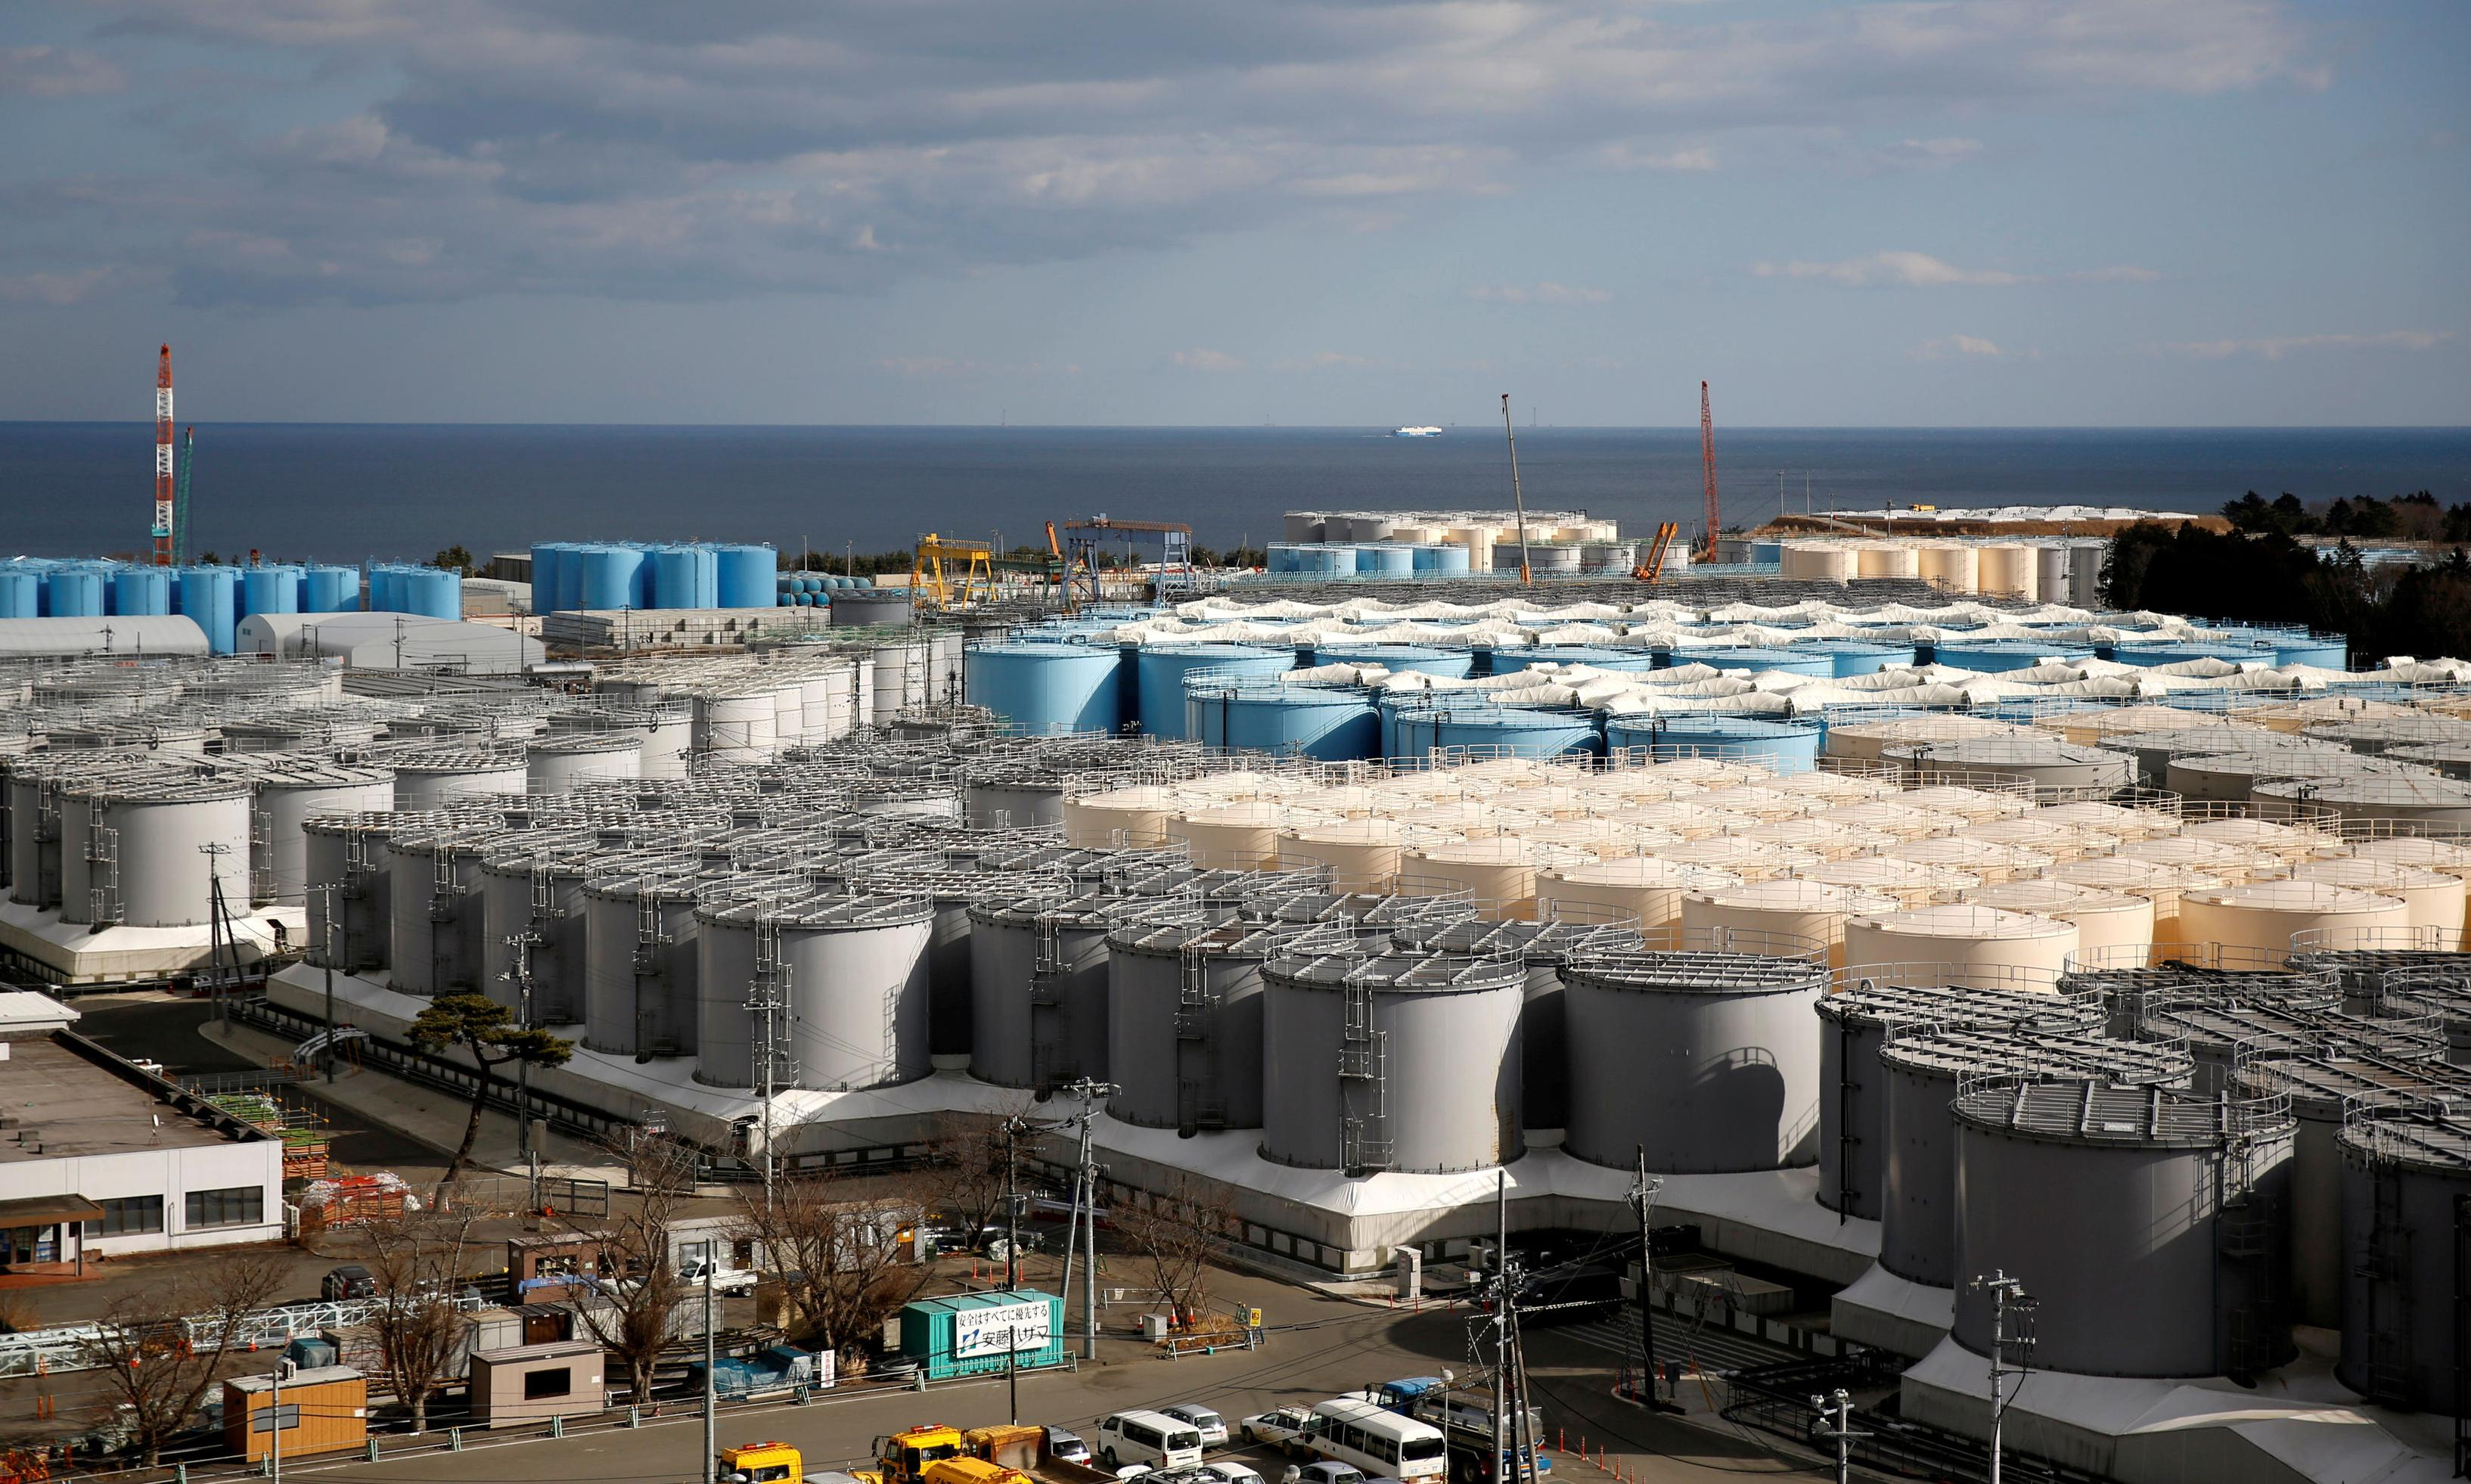 Fukushima: Japan will have to dump radioactive water into Pacific, minister says